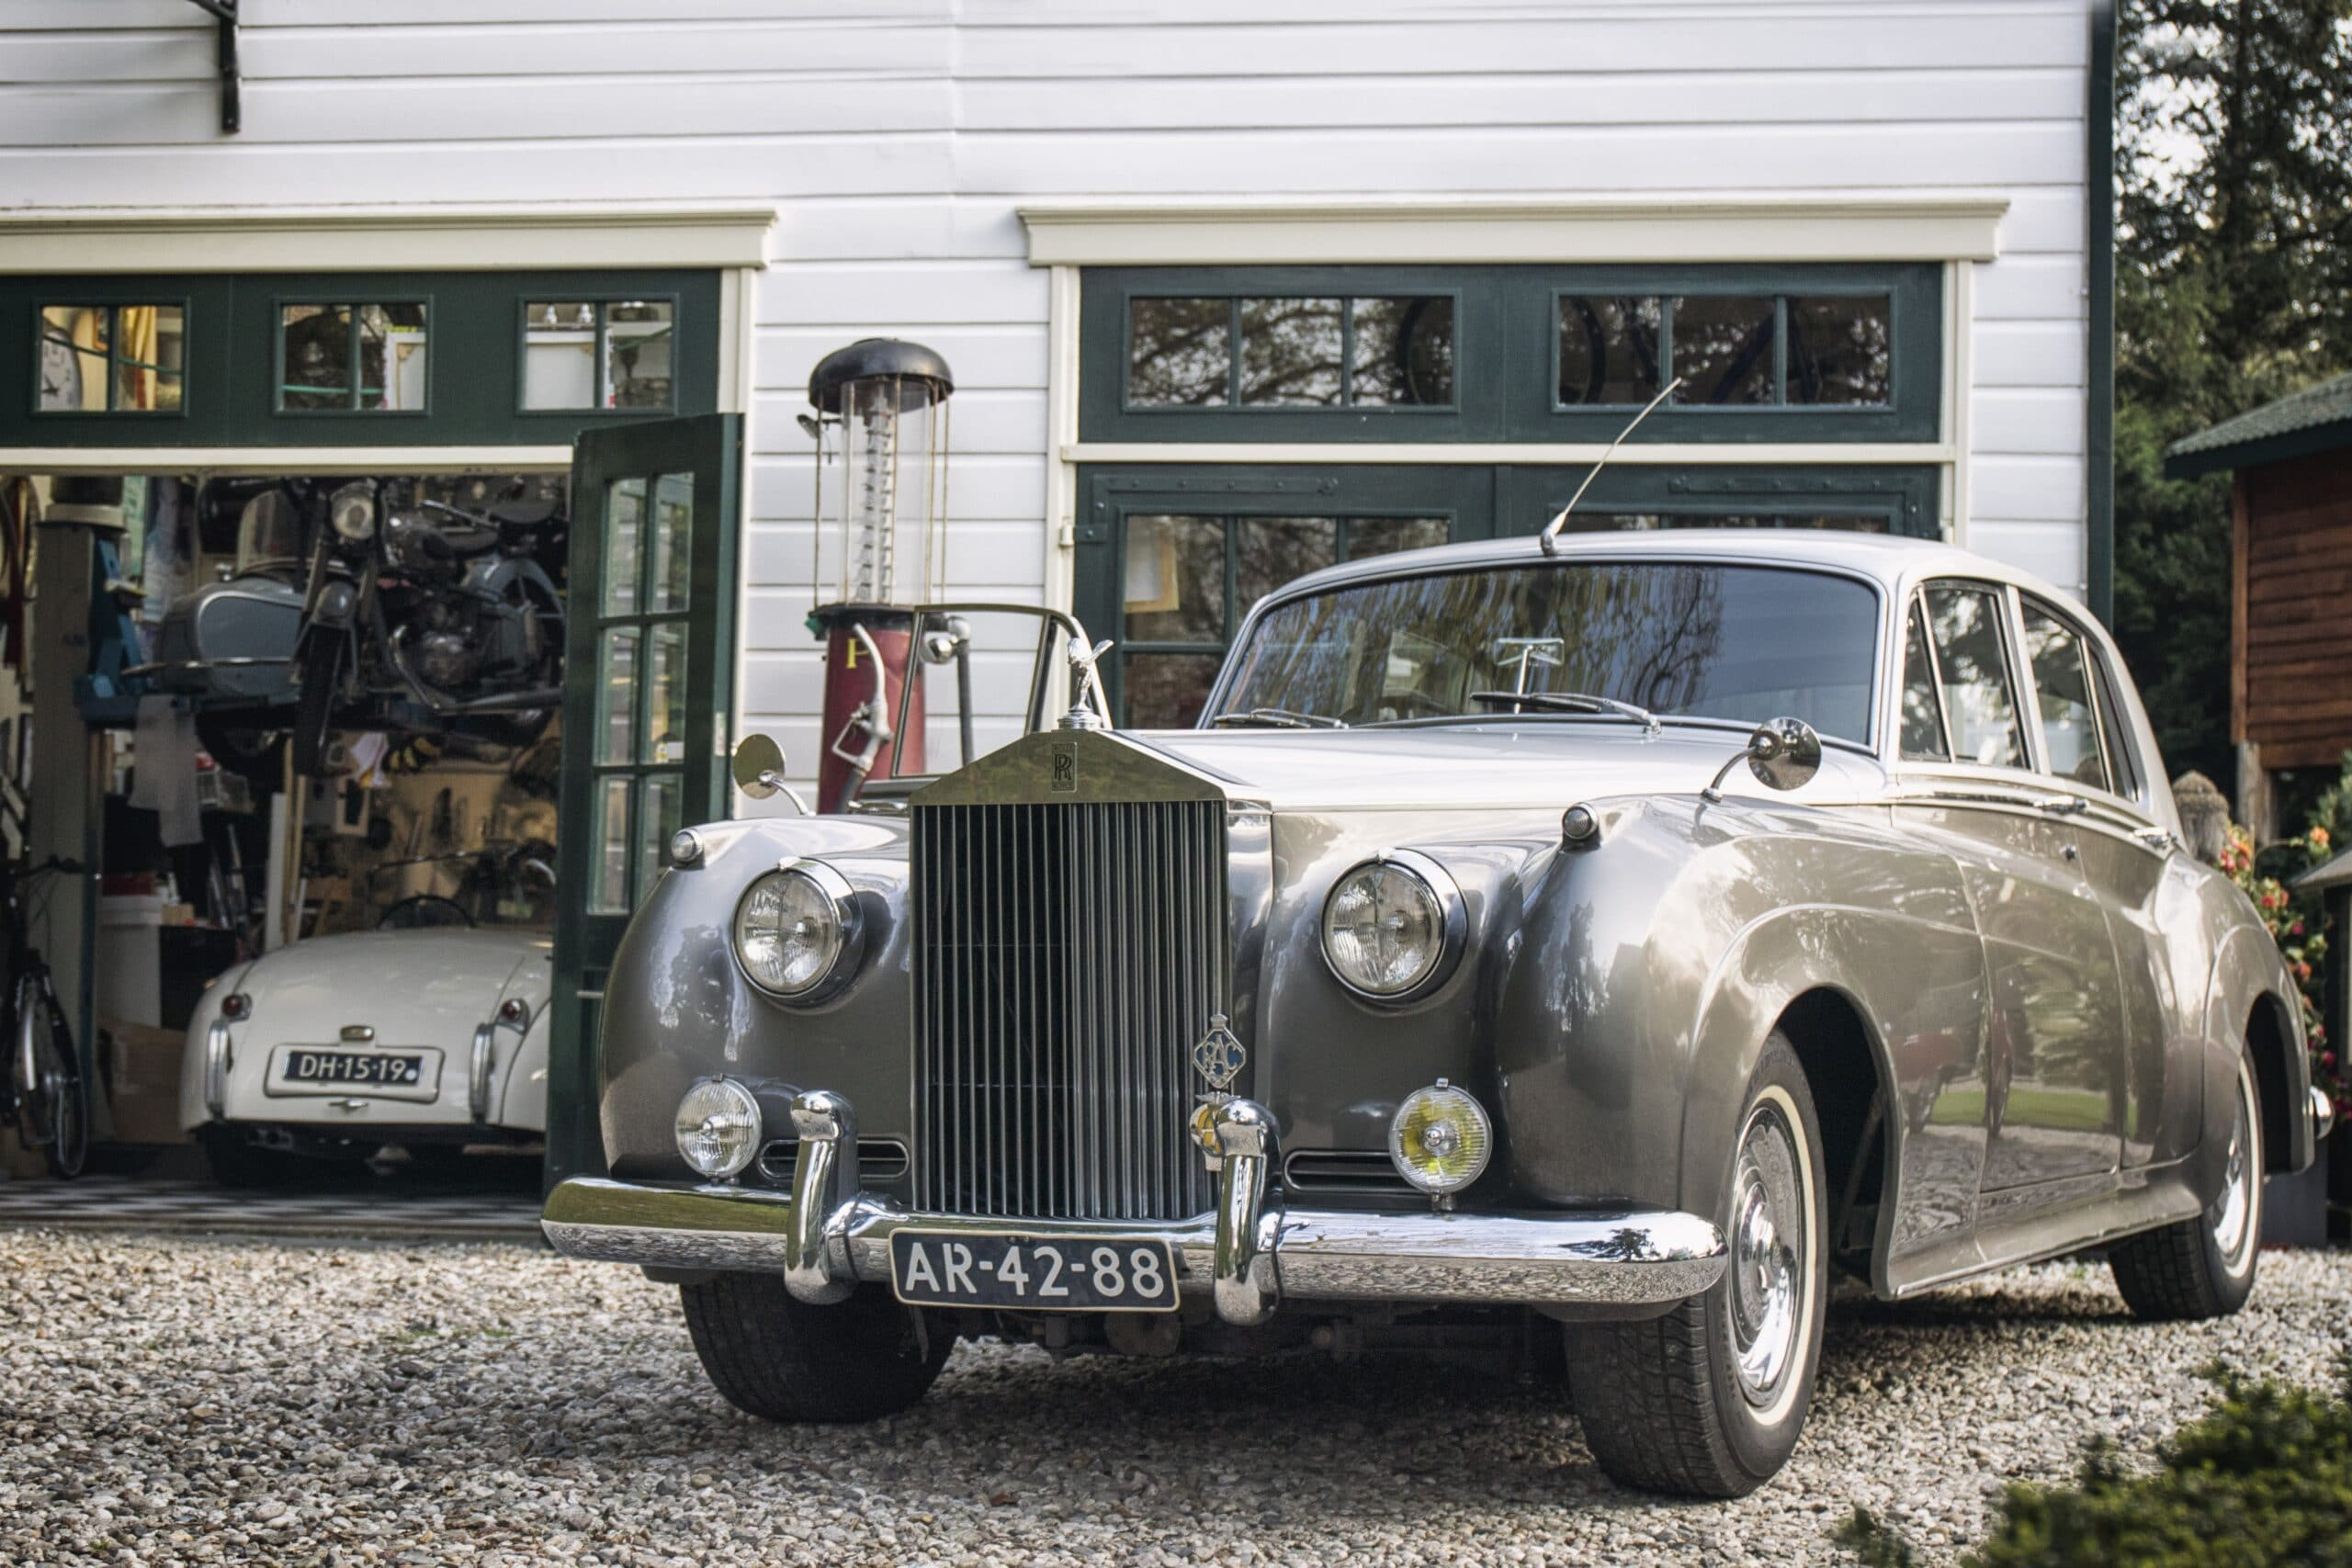 Rolls Royce en Jaguar XK120 van de Bleekemolen collectie in de garage